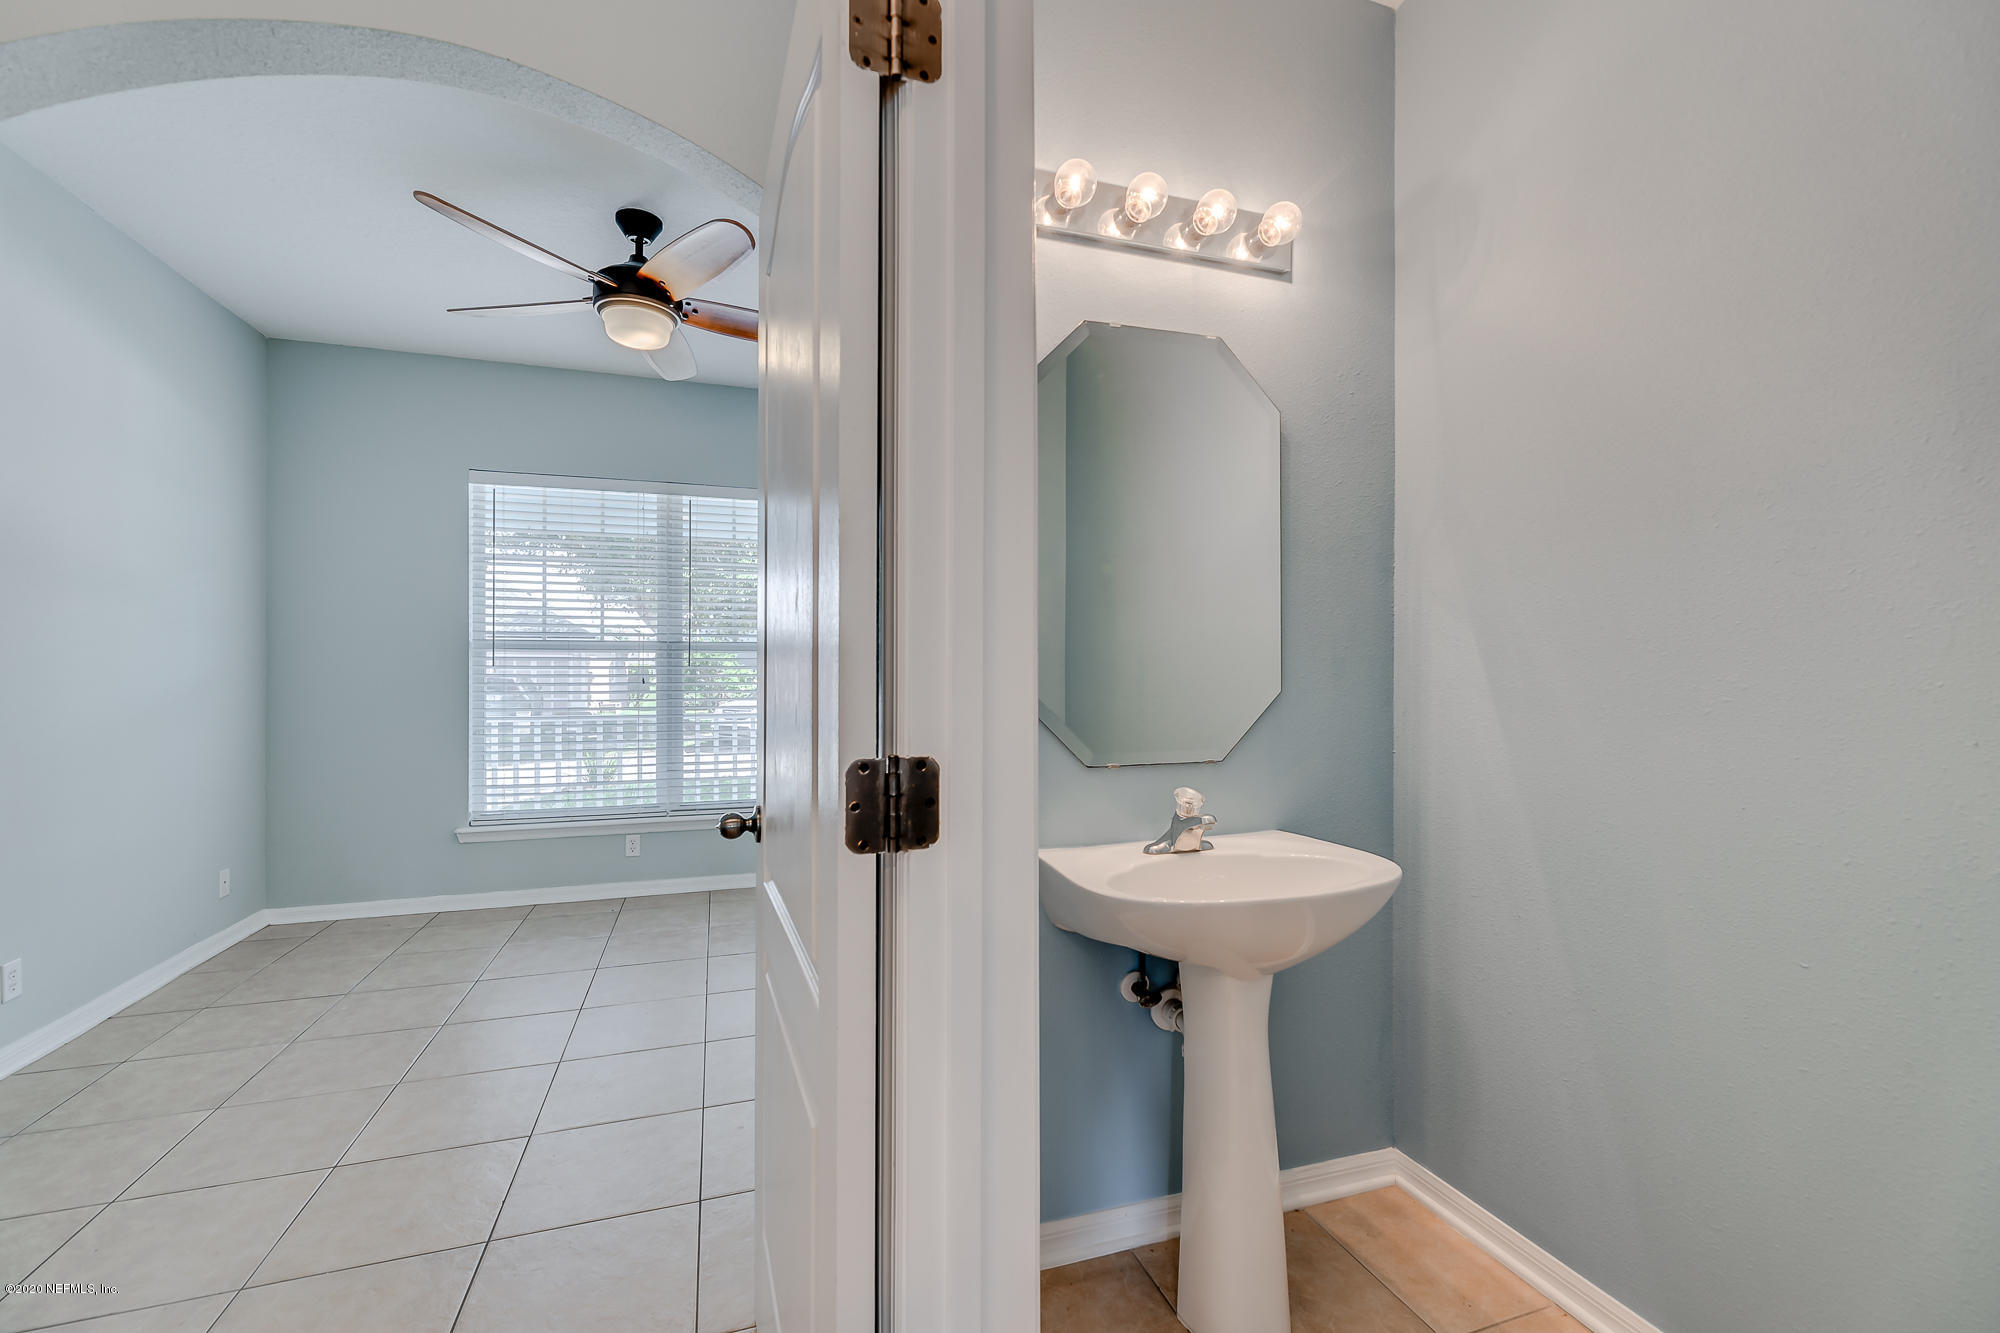 621 SUN DOWN, ST AUGUSTINE, FLORIDA 32080, 3 Bedrooms Bedrooms, ,2 BathroomsBathrooms,Residential,For sale,SUN DOWN,1079753